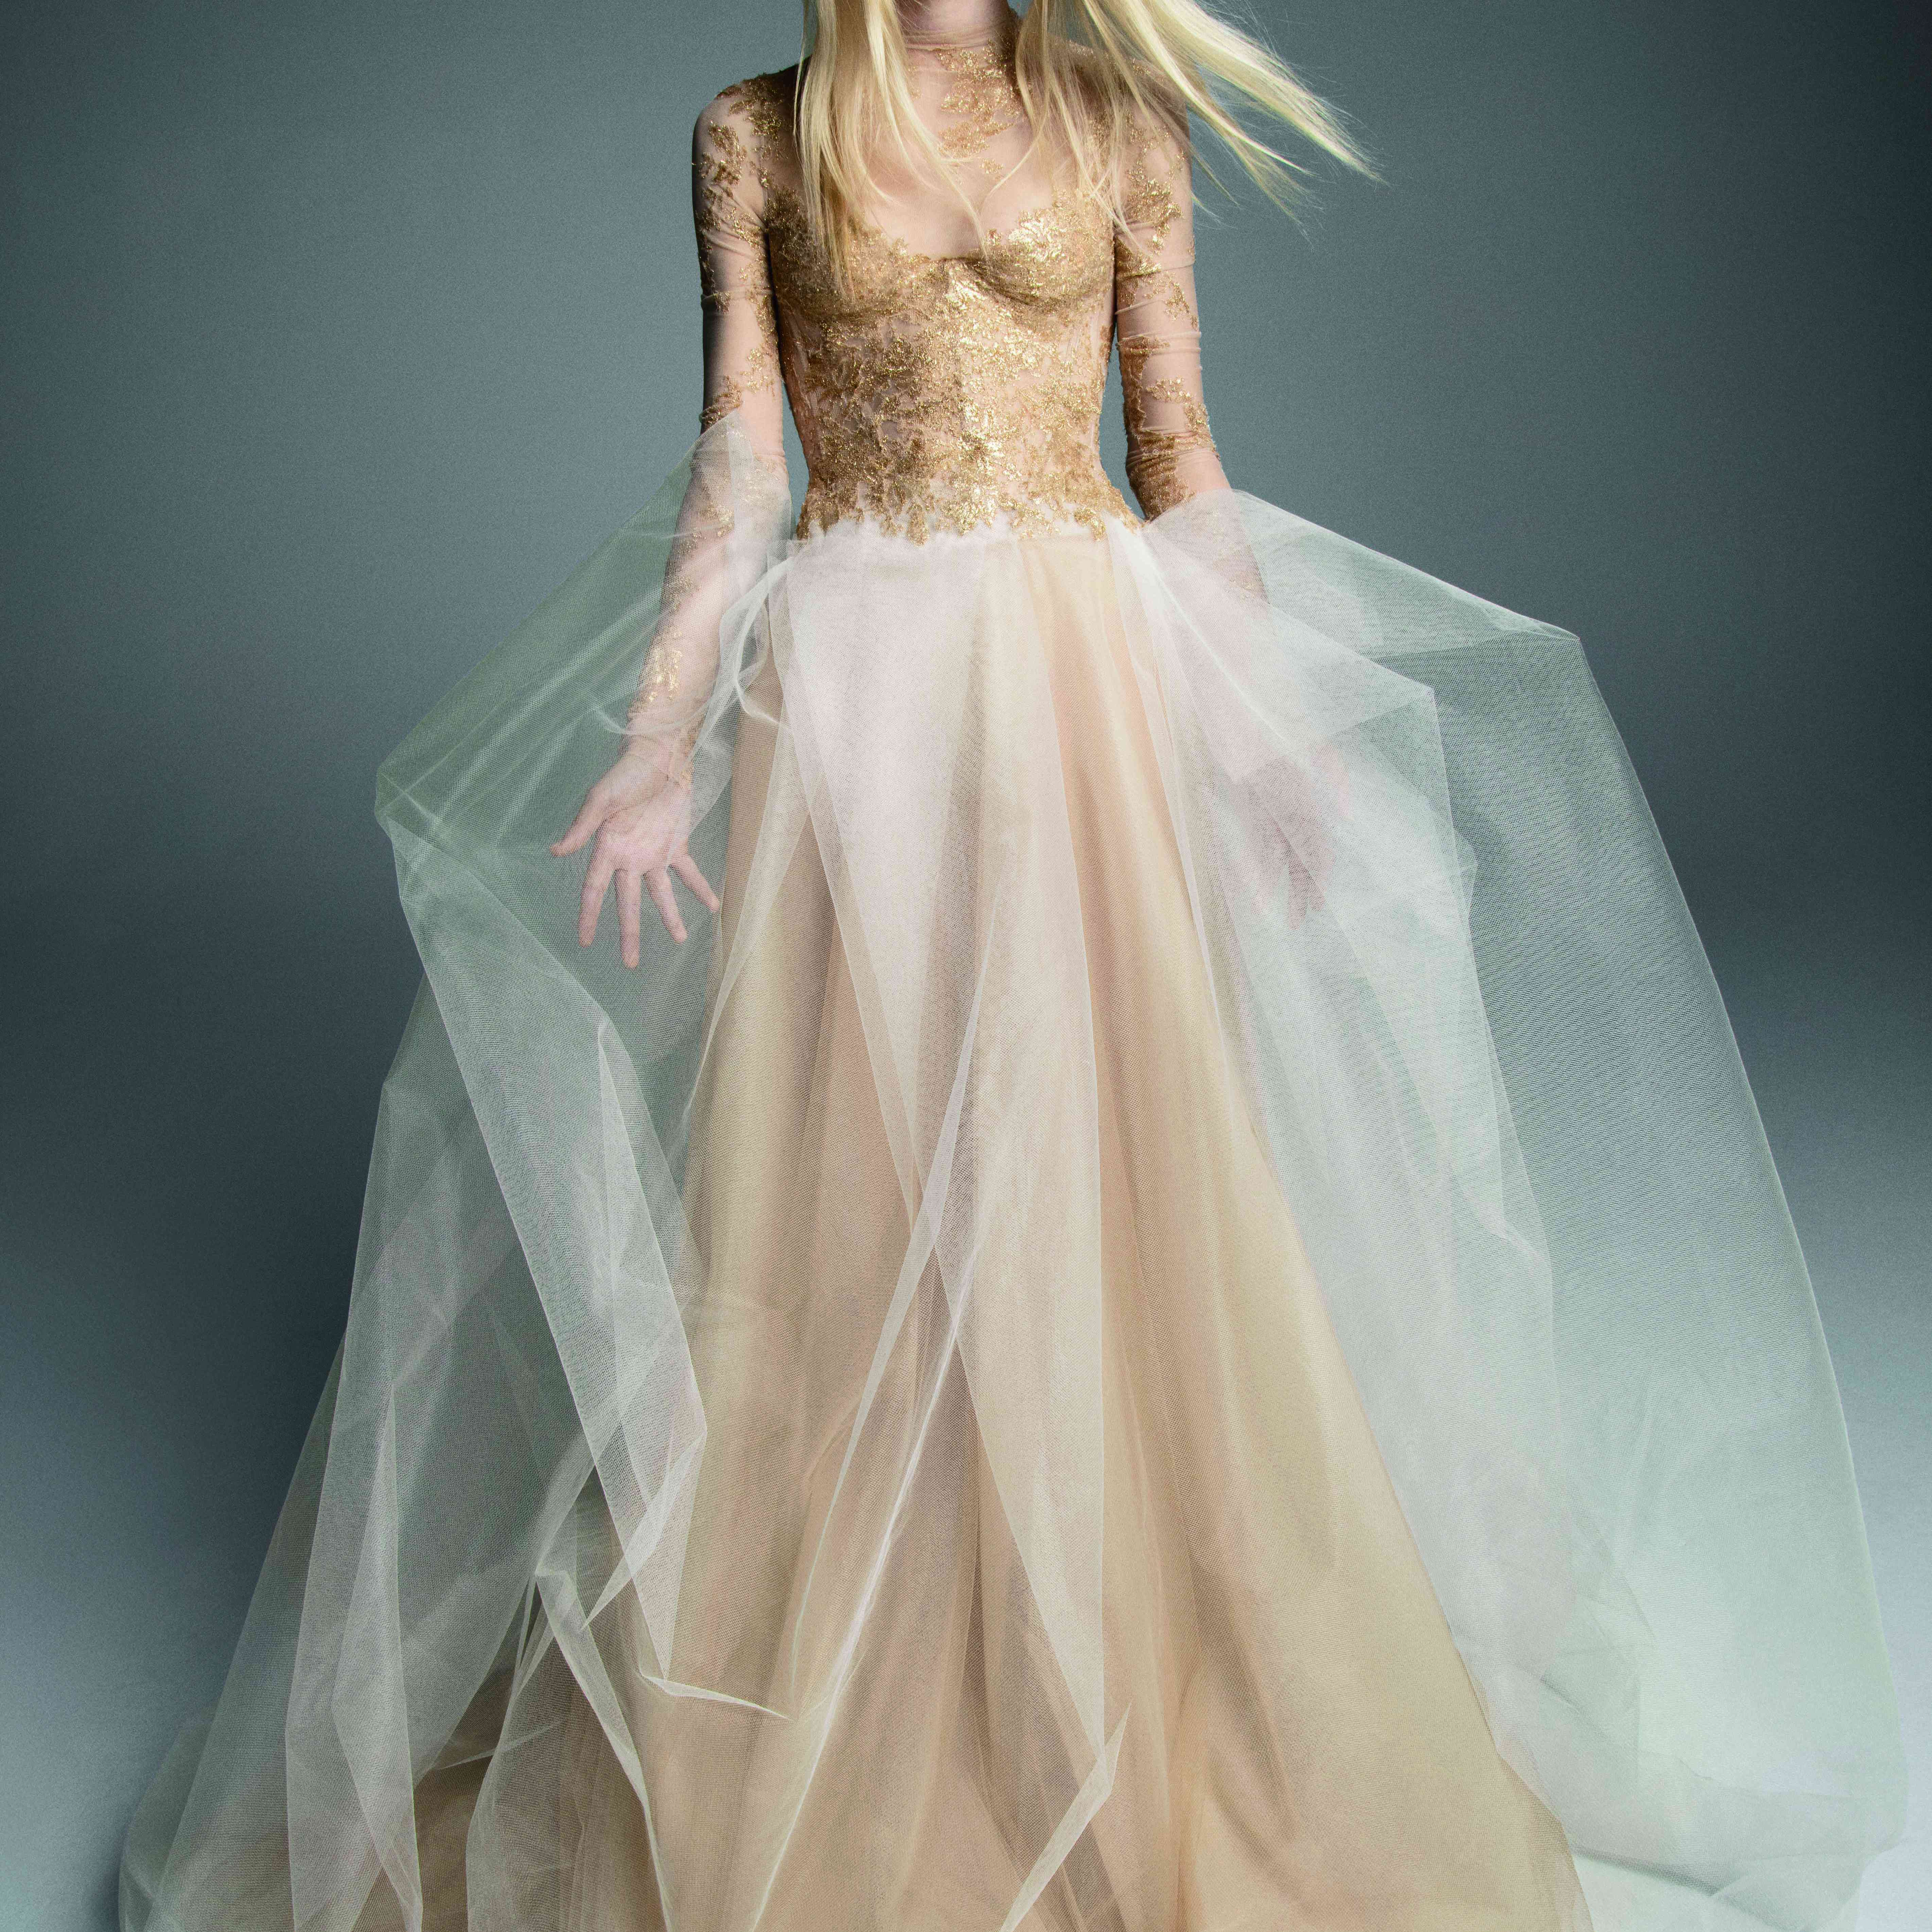 Model in long-sleeve nude gown with an embroidered bodice and a white tulle overskirt